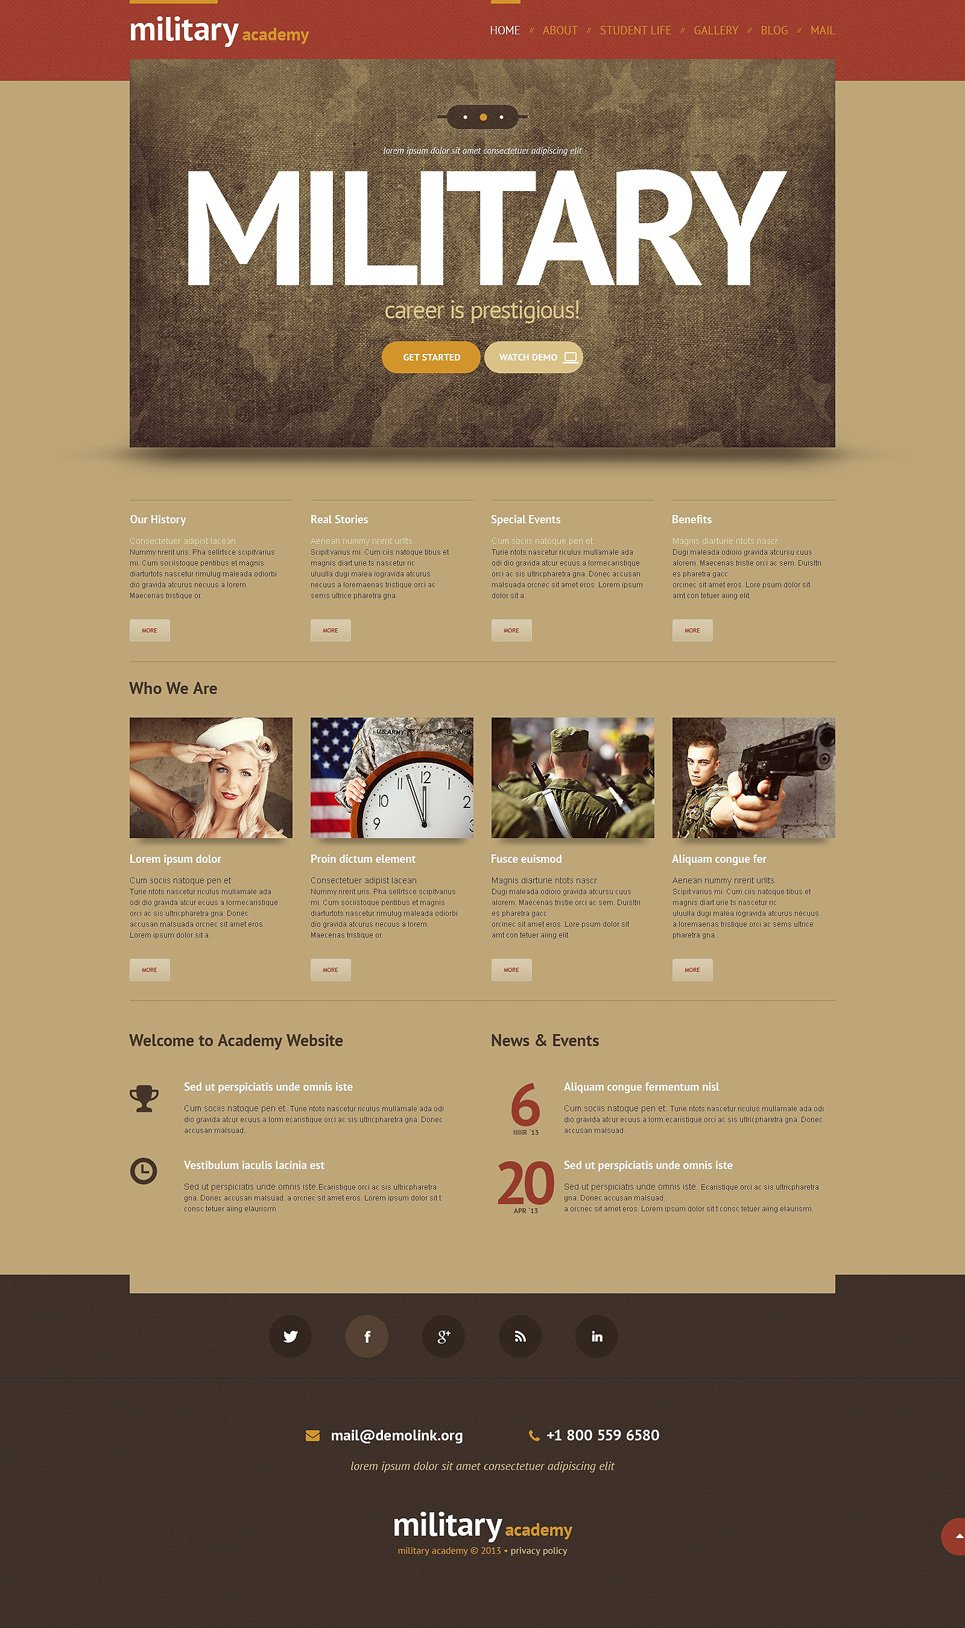 Free military powerpoint templates images templates example free rotc powerpoint template army gallery powerpoint template and layout army powerpoint template images templates example free toneelgroepblik Images